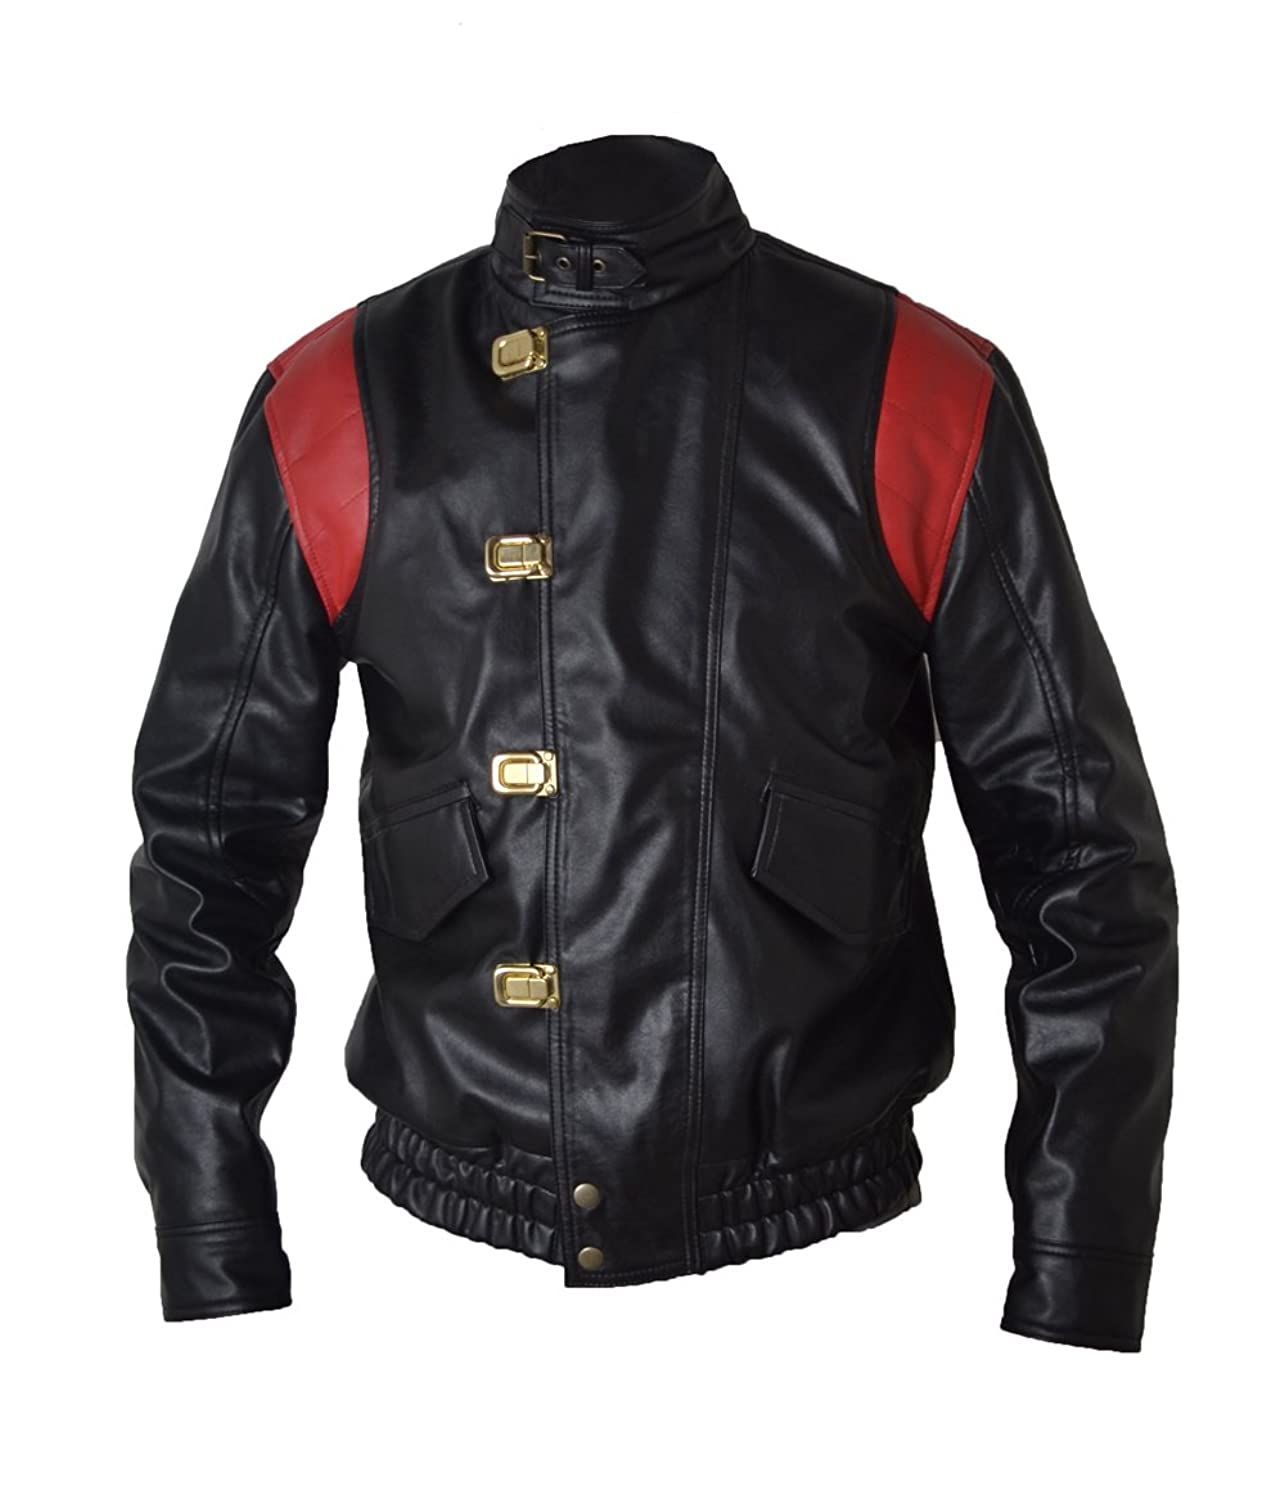 Akira Manga V4 Black with Red Stripes Real Sheep Leather Leather Jacket With Capsule & Wordings